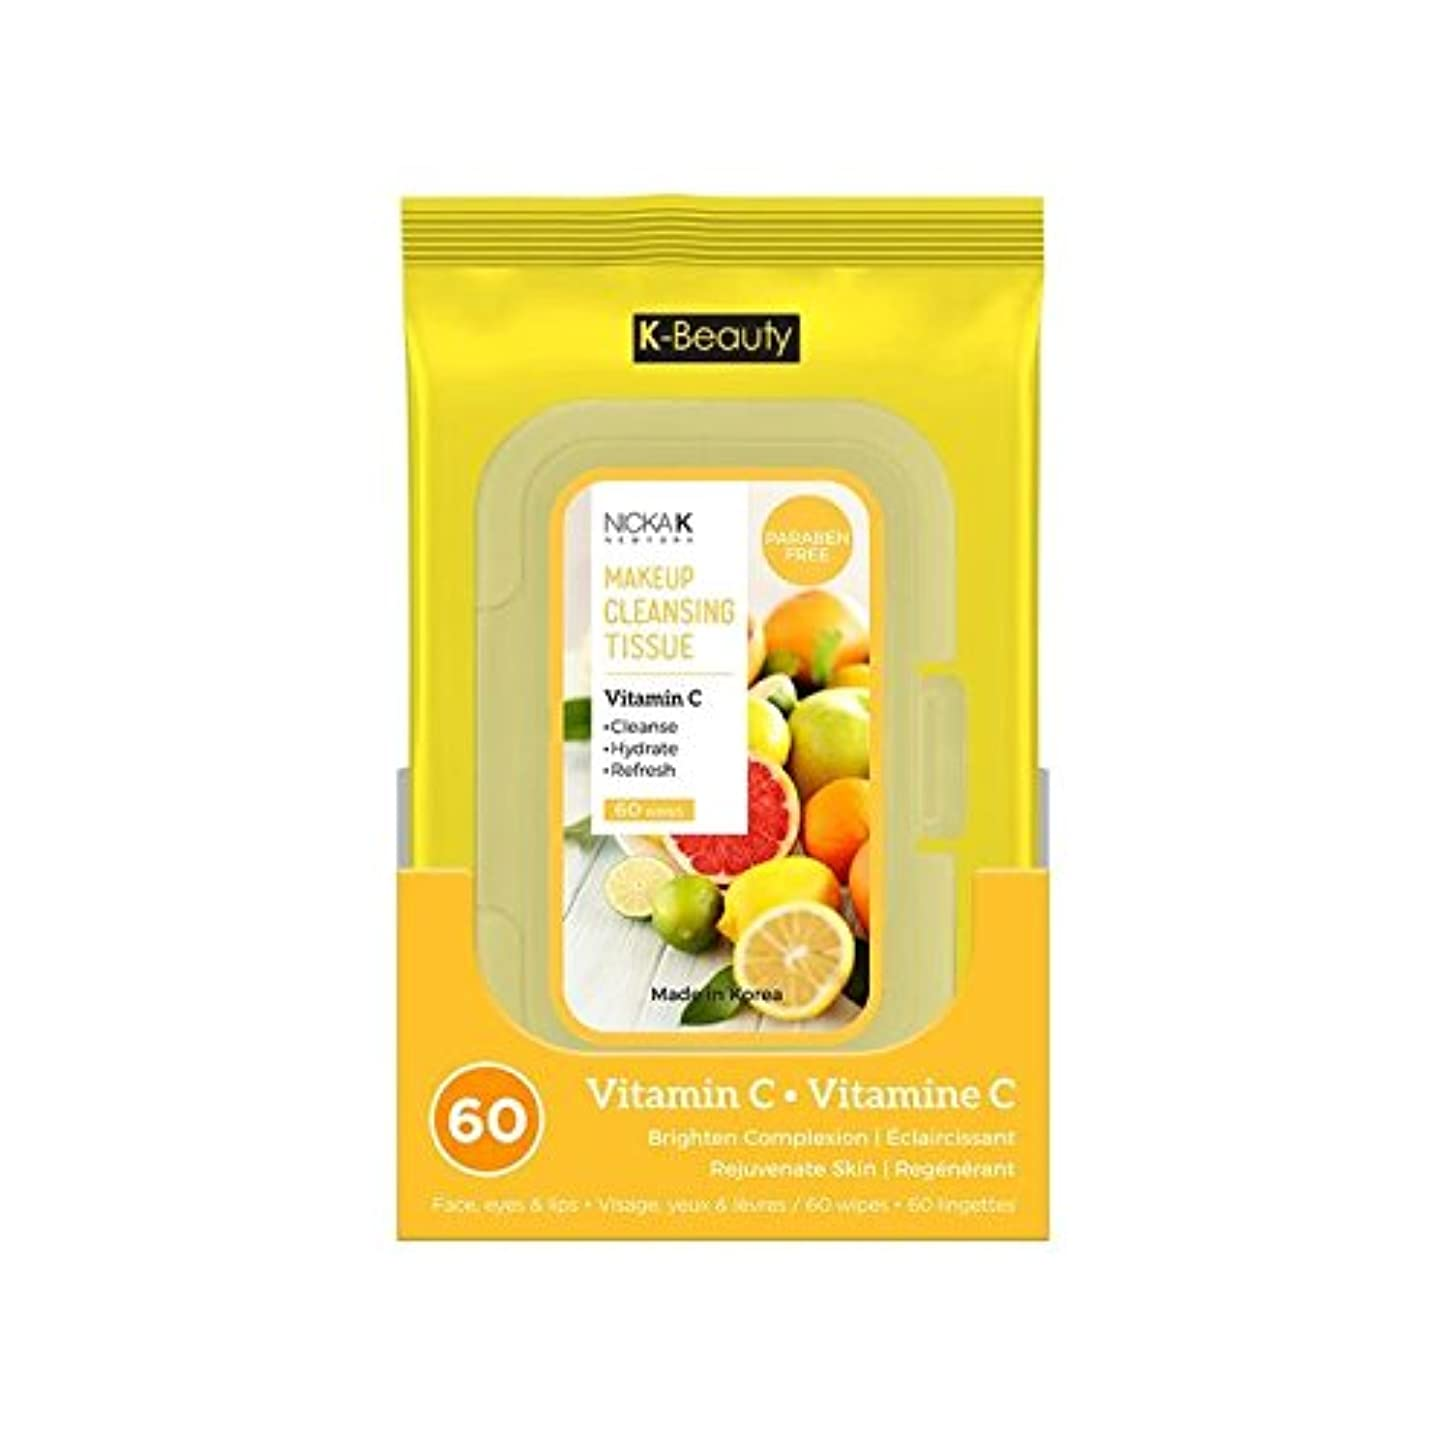 (6 Pack) NICKA K Make Up Cleansing Tissue - Vitamin C (並行輸入品)